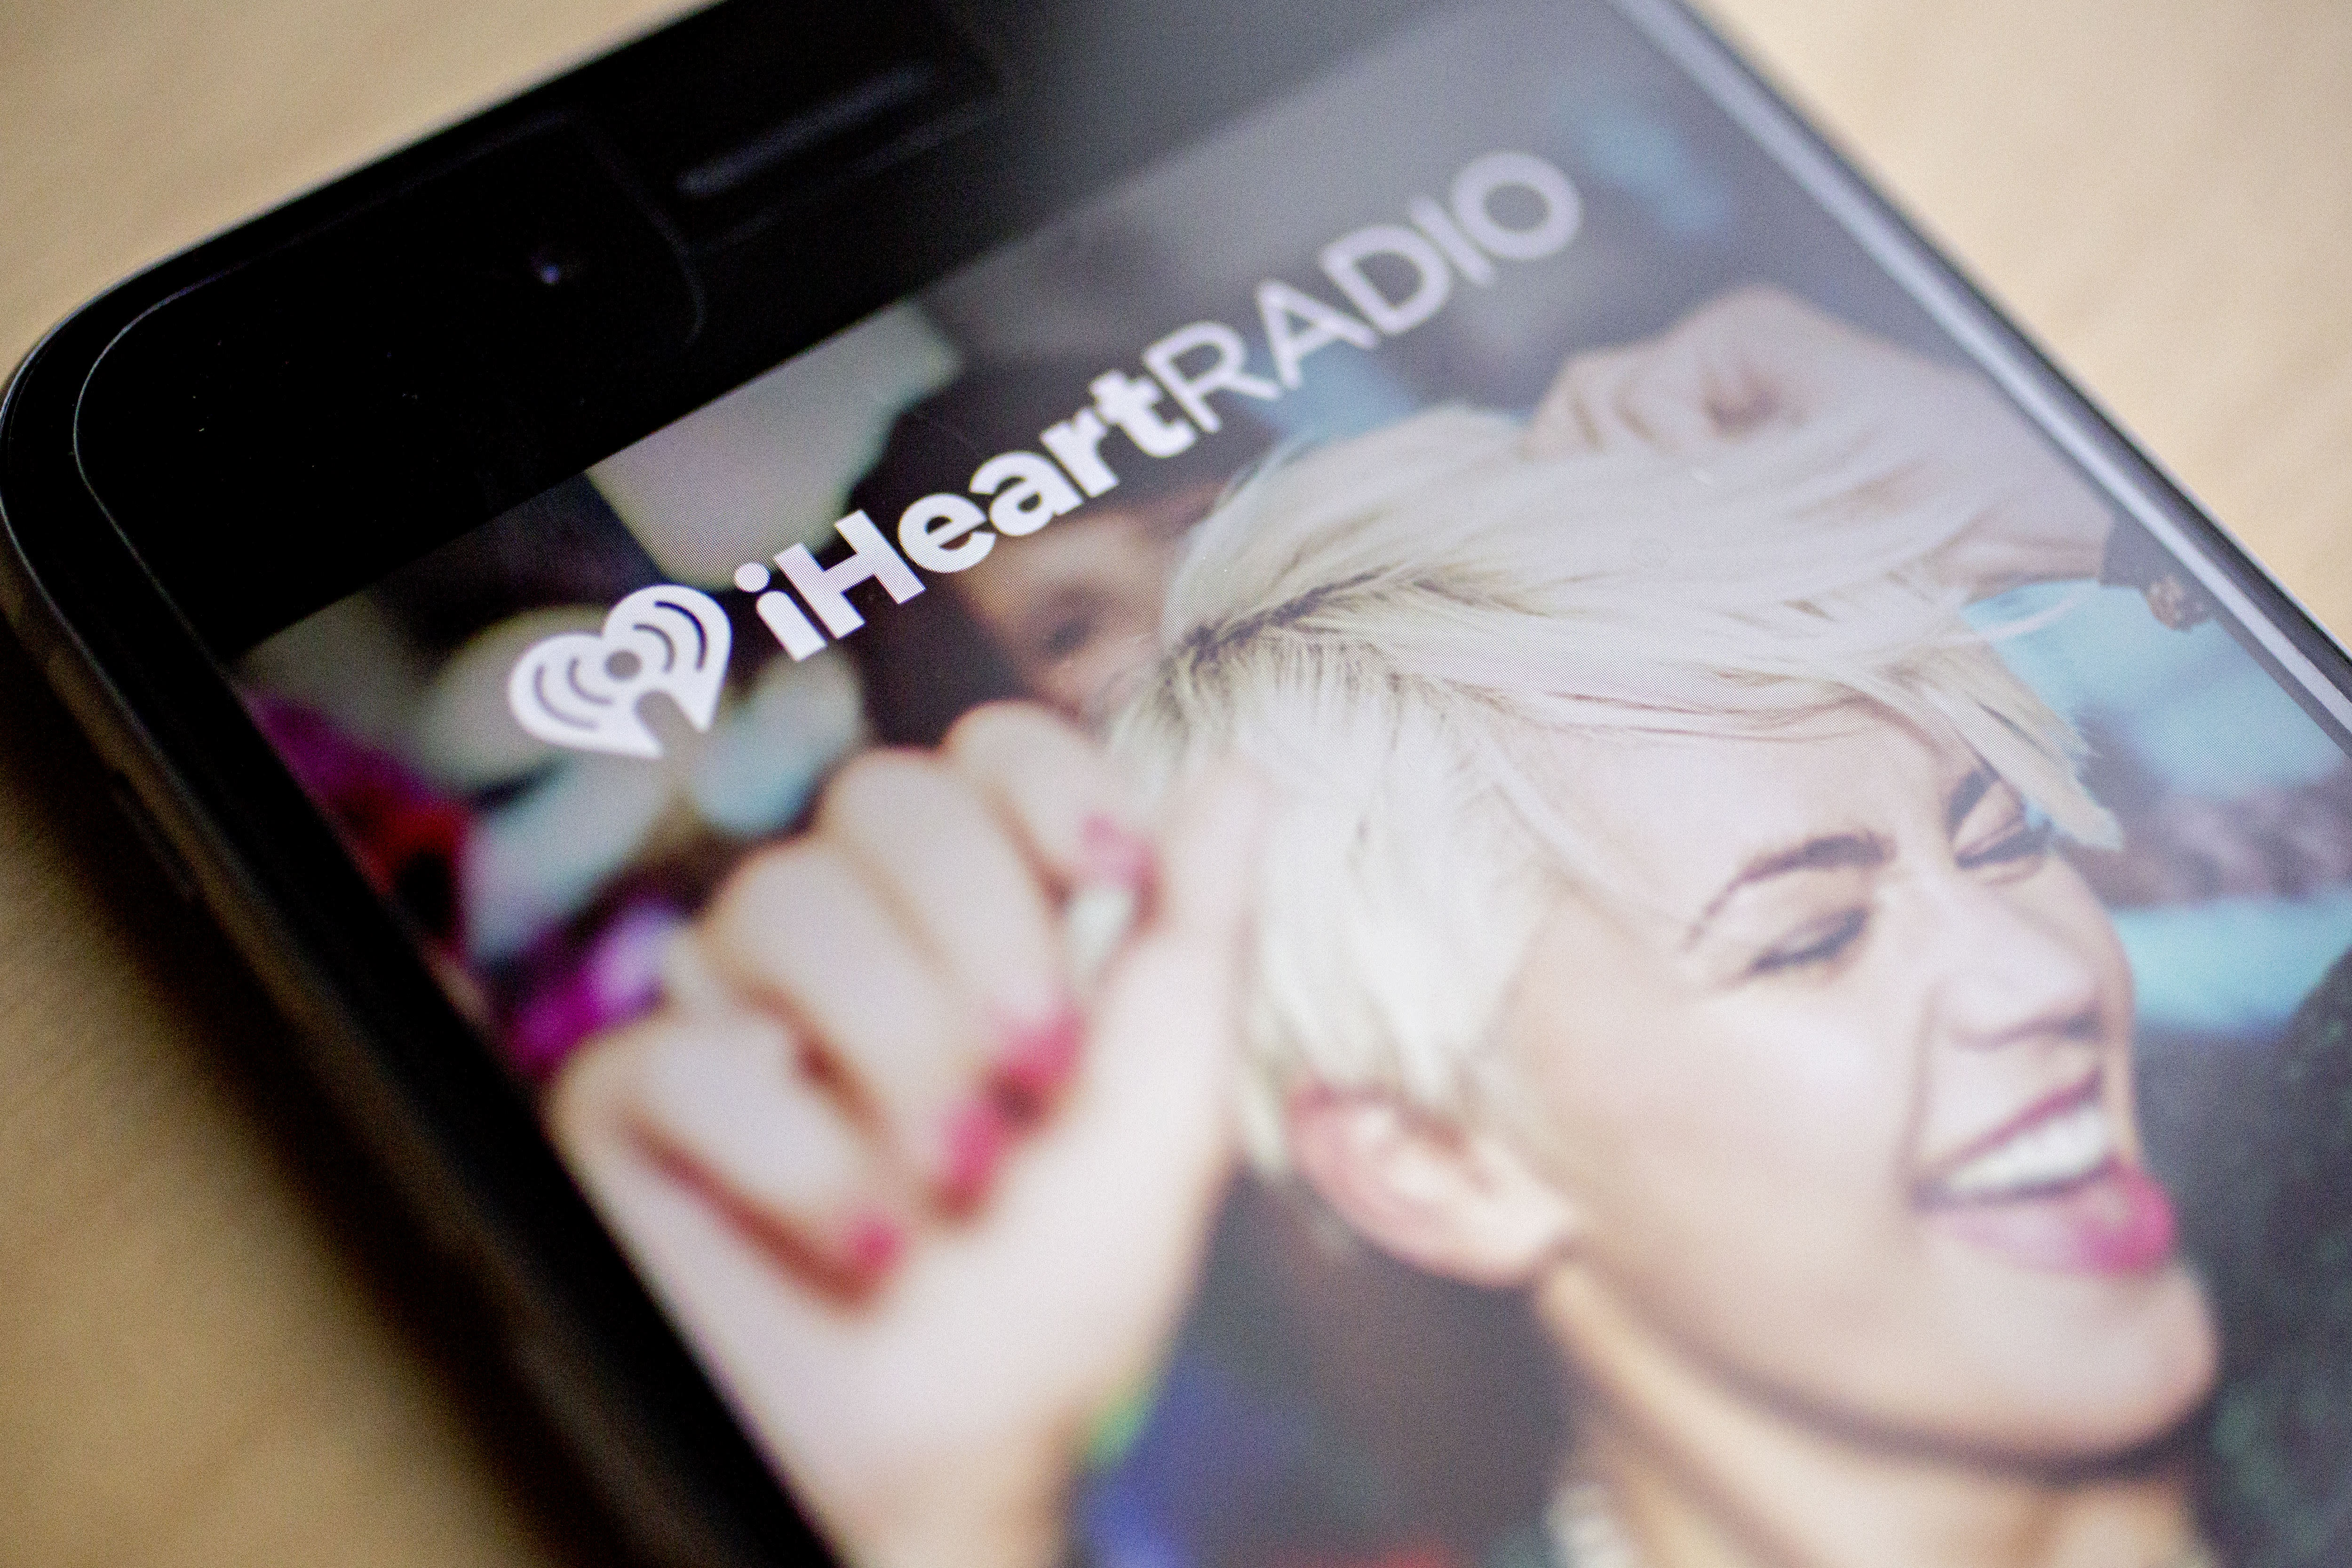 Apple considers buying stake in bankrupt iHeartMedia, FT reports